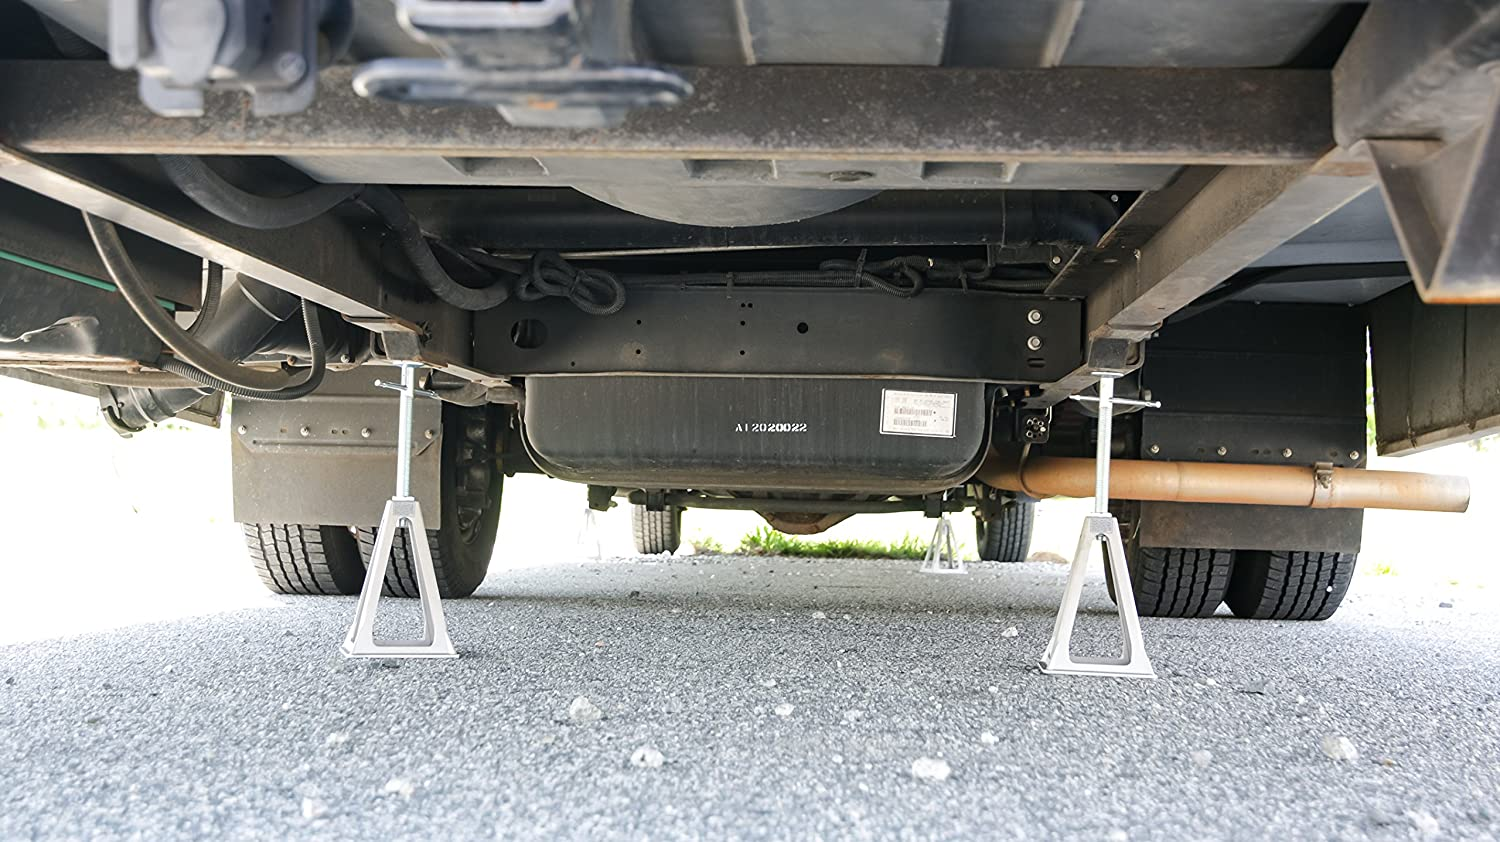 These are great jacks to stabilize your RVs, Camp Trailers, etc. They are considered to be the best jack stands in the market.